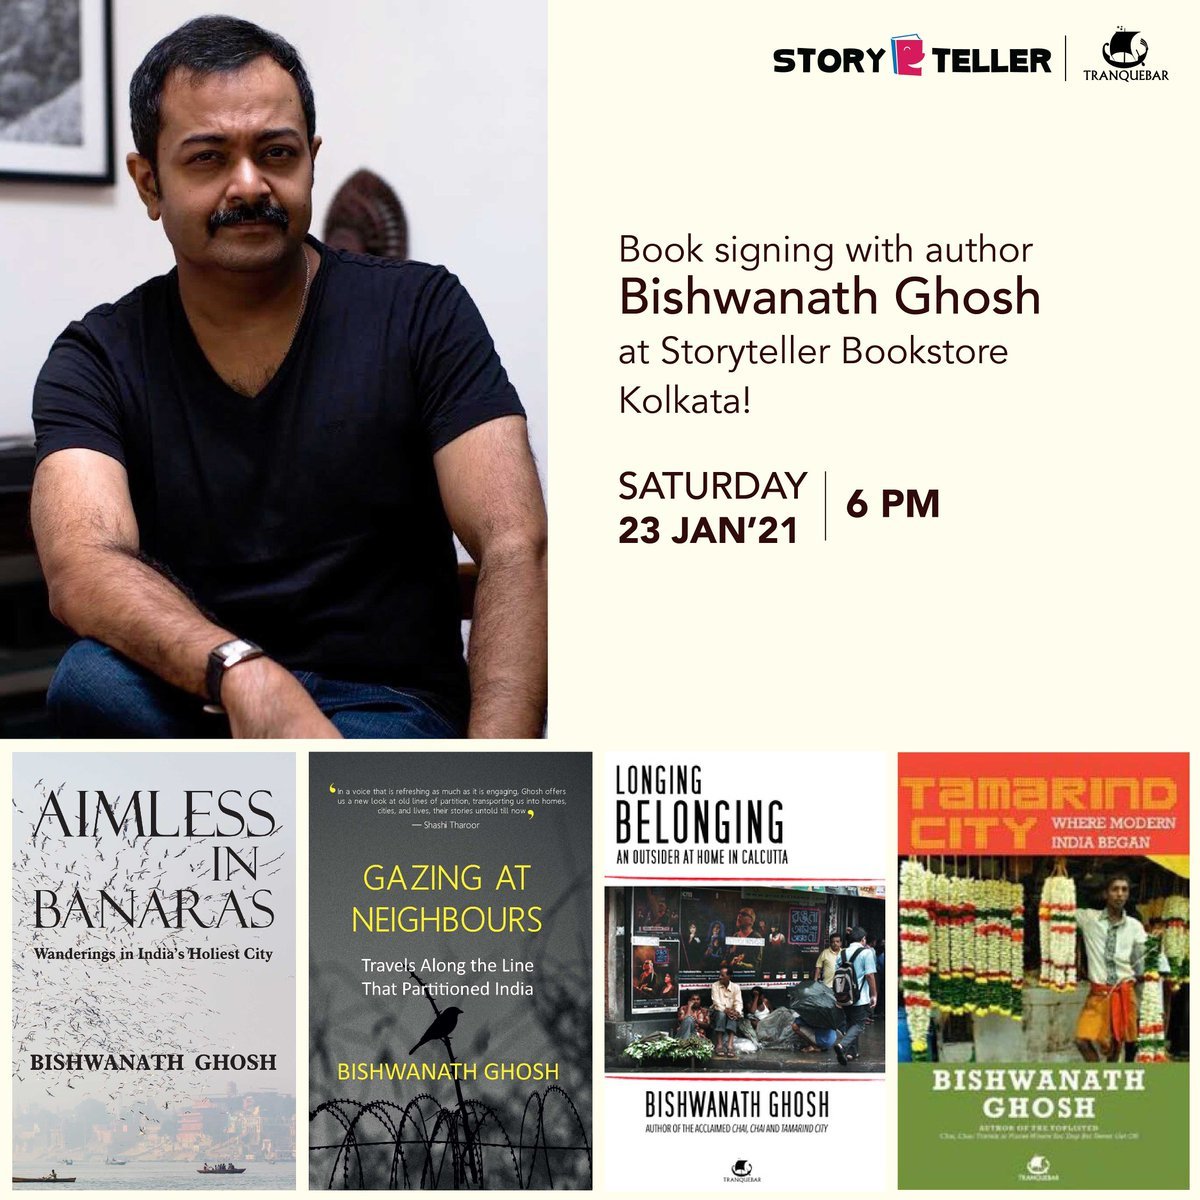 Saturday! Writer and journalist @BishwanathGhosh visits us for a cup of tea and a signing session.  Come join us at 6 pm.  RSVP 9331051191/8910896319 Please wear masks. Social distancing will be observed. @WestlandBooks  #Tranquebar #Kolkata